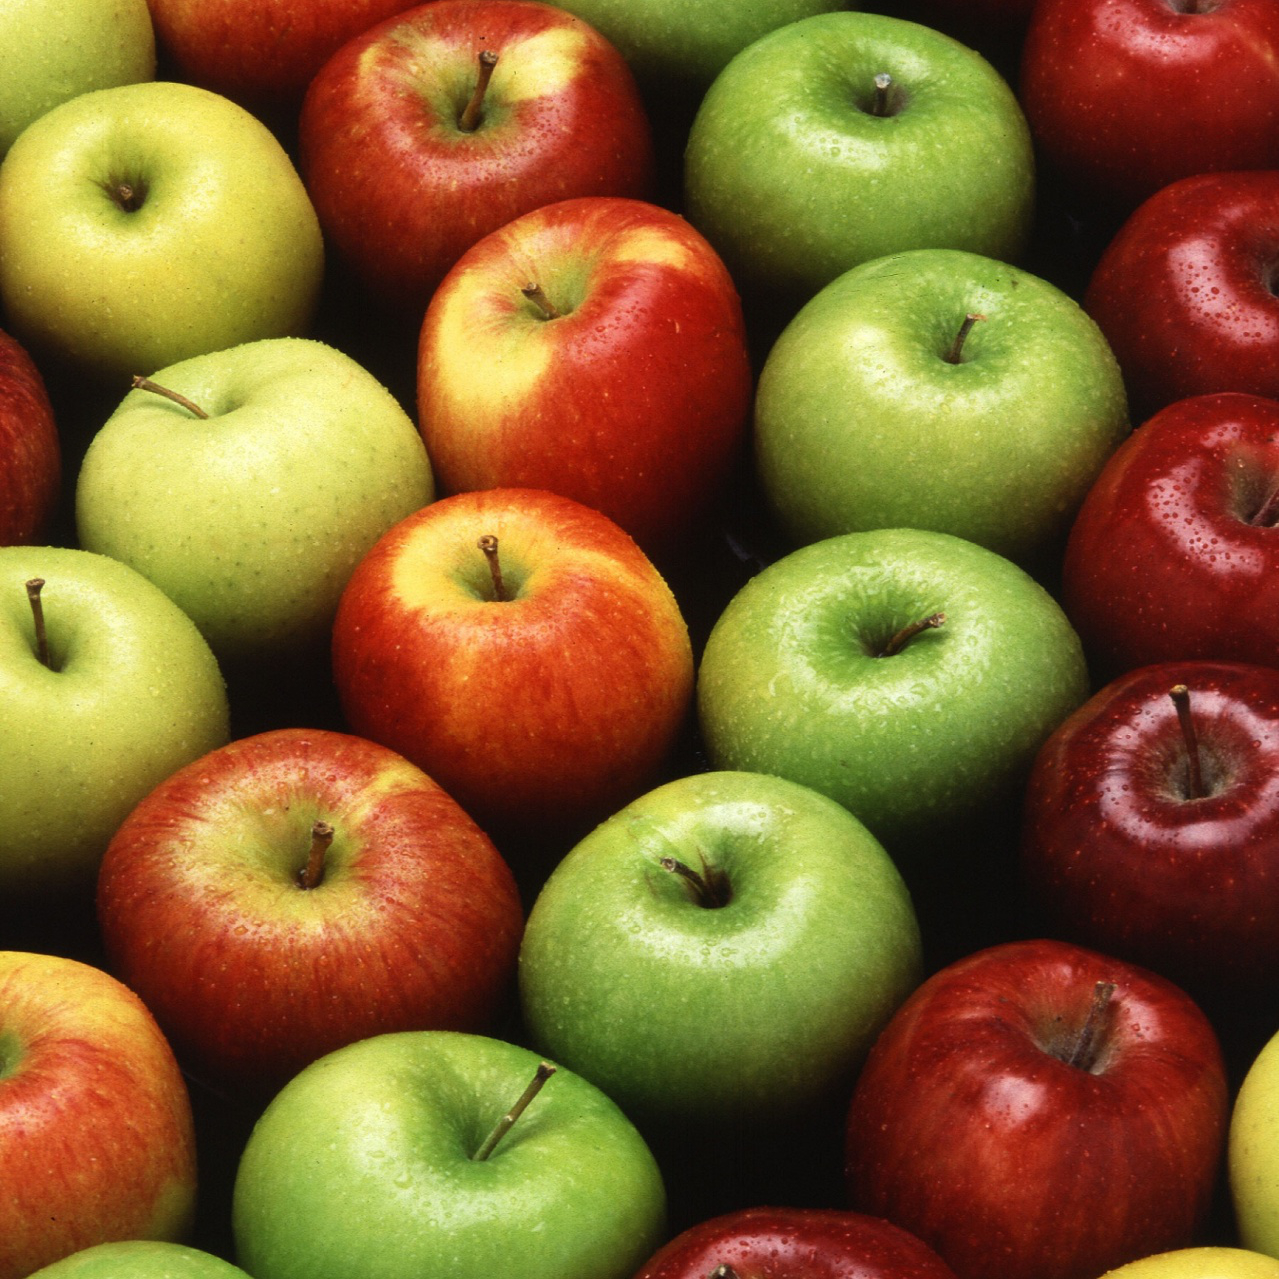 rows of multicolored apples